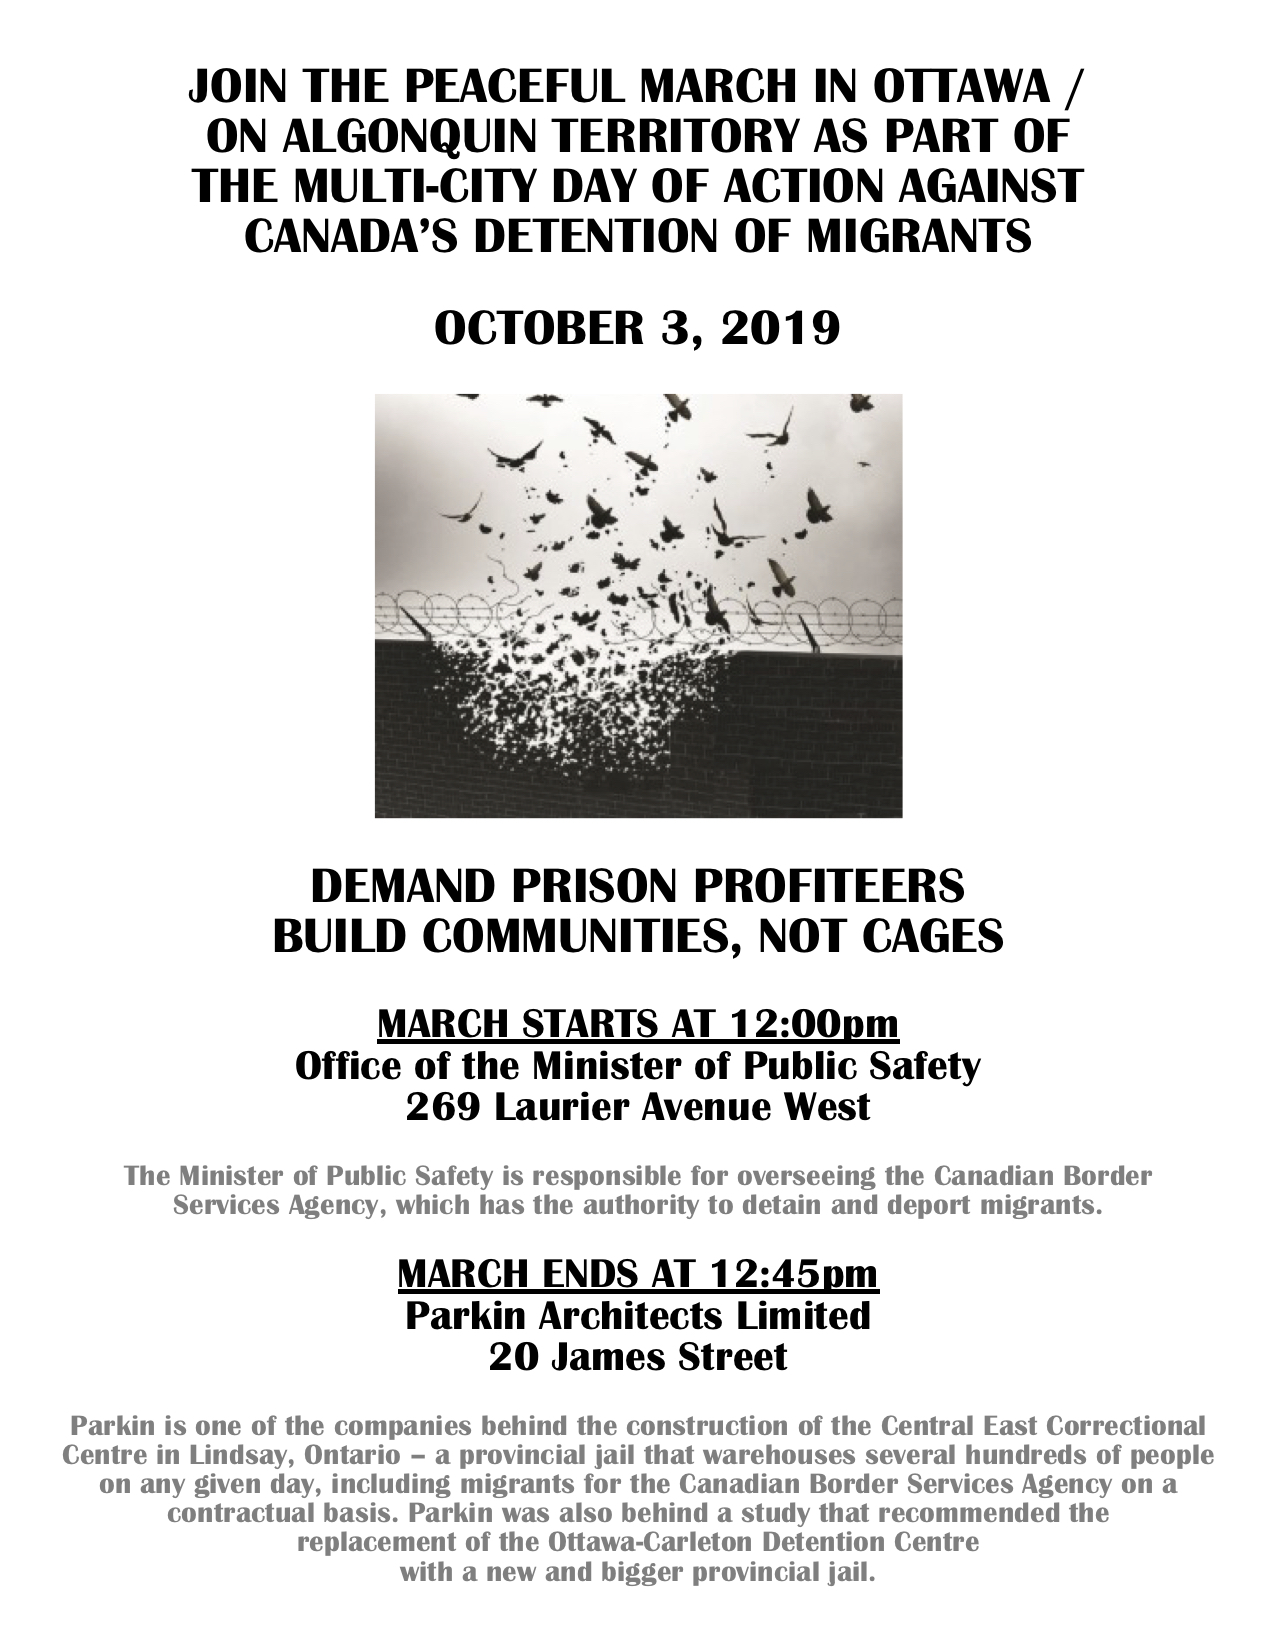 Poster for a peacful march to demand the end of profiting from prisons